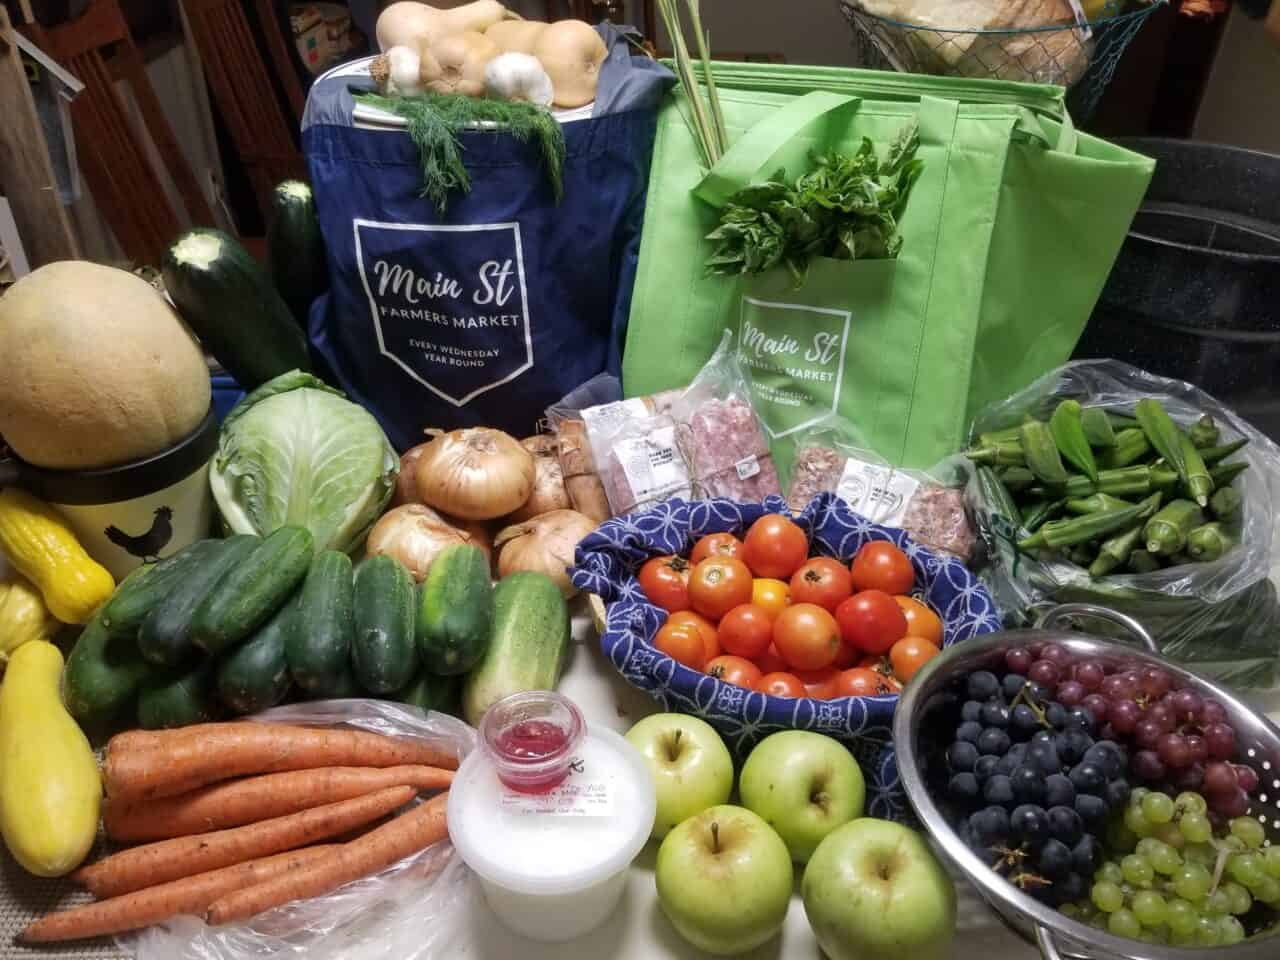 One Haul of a Market